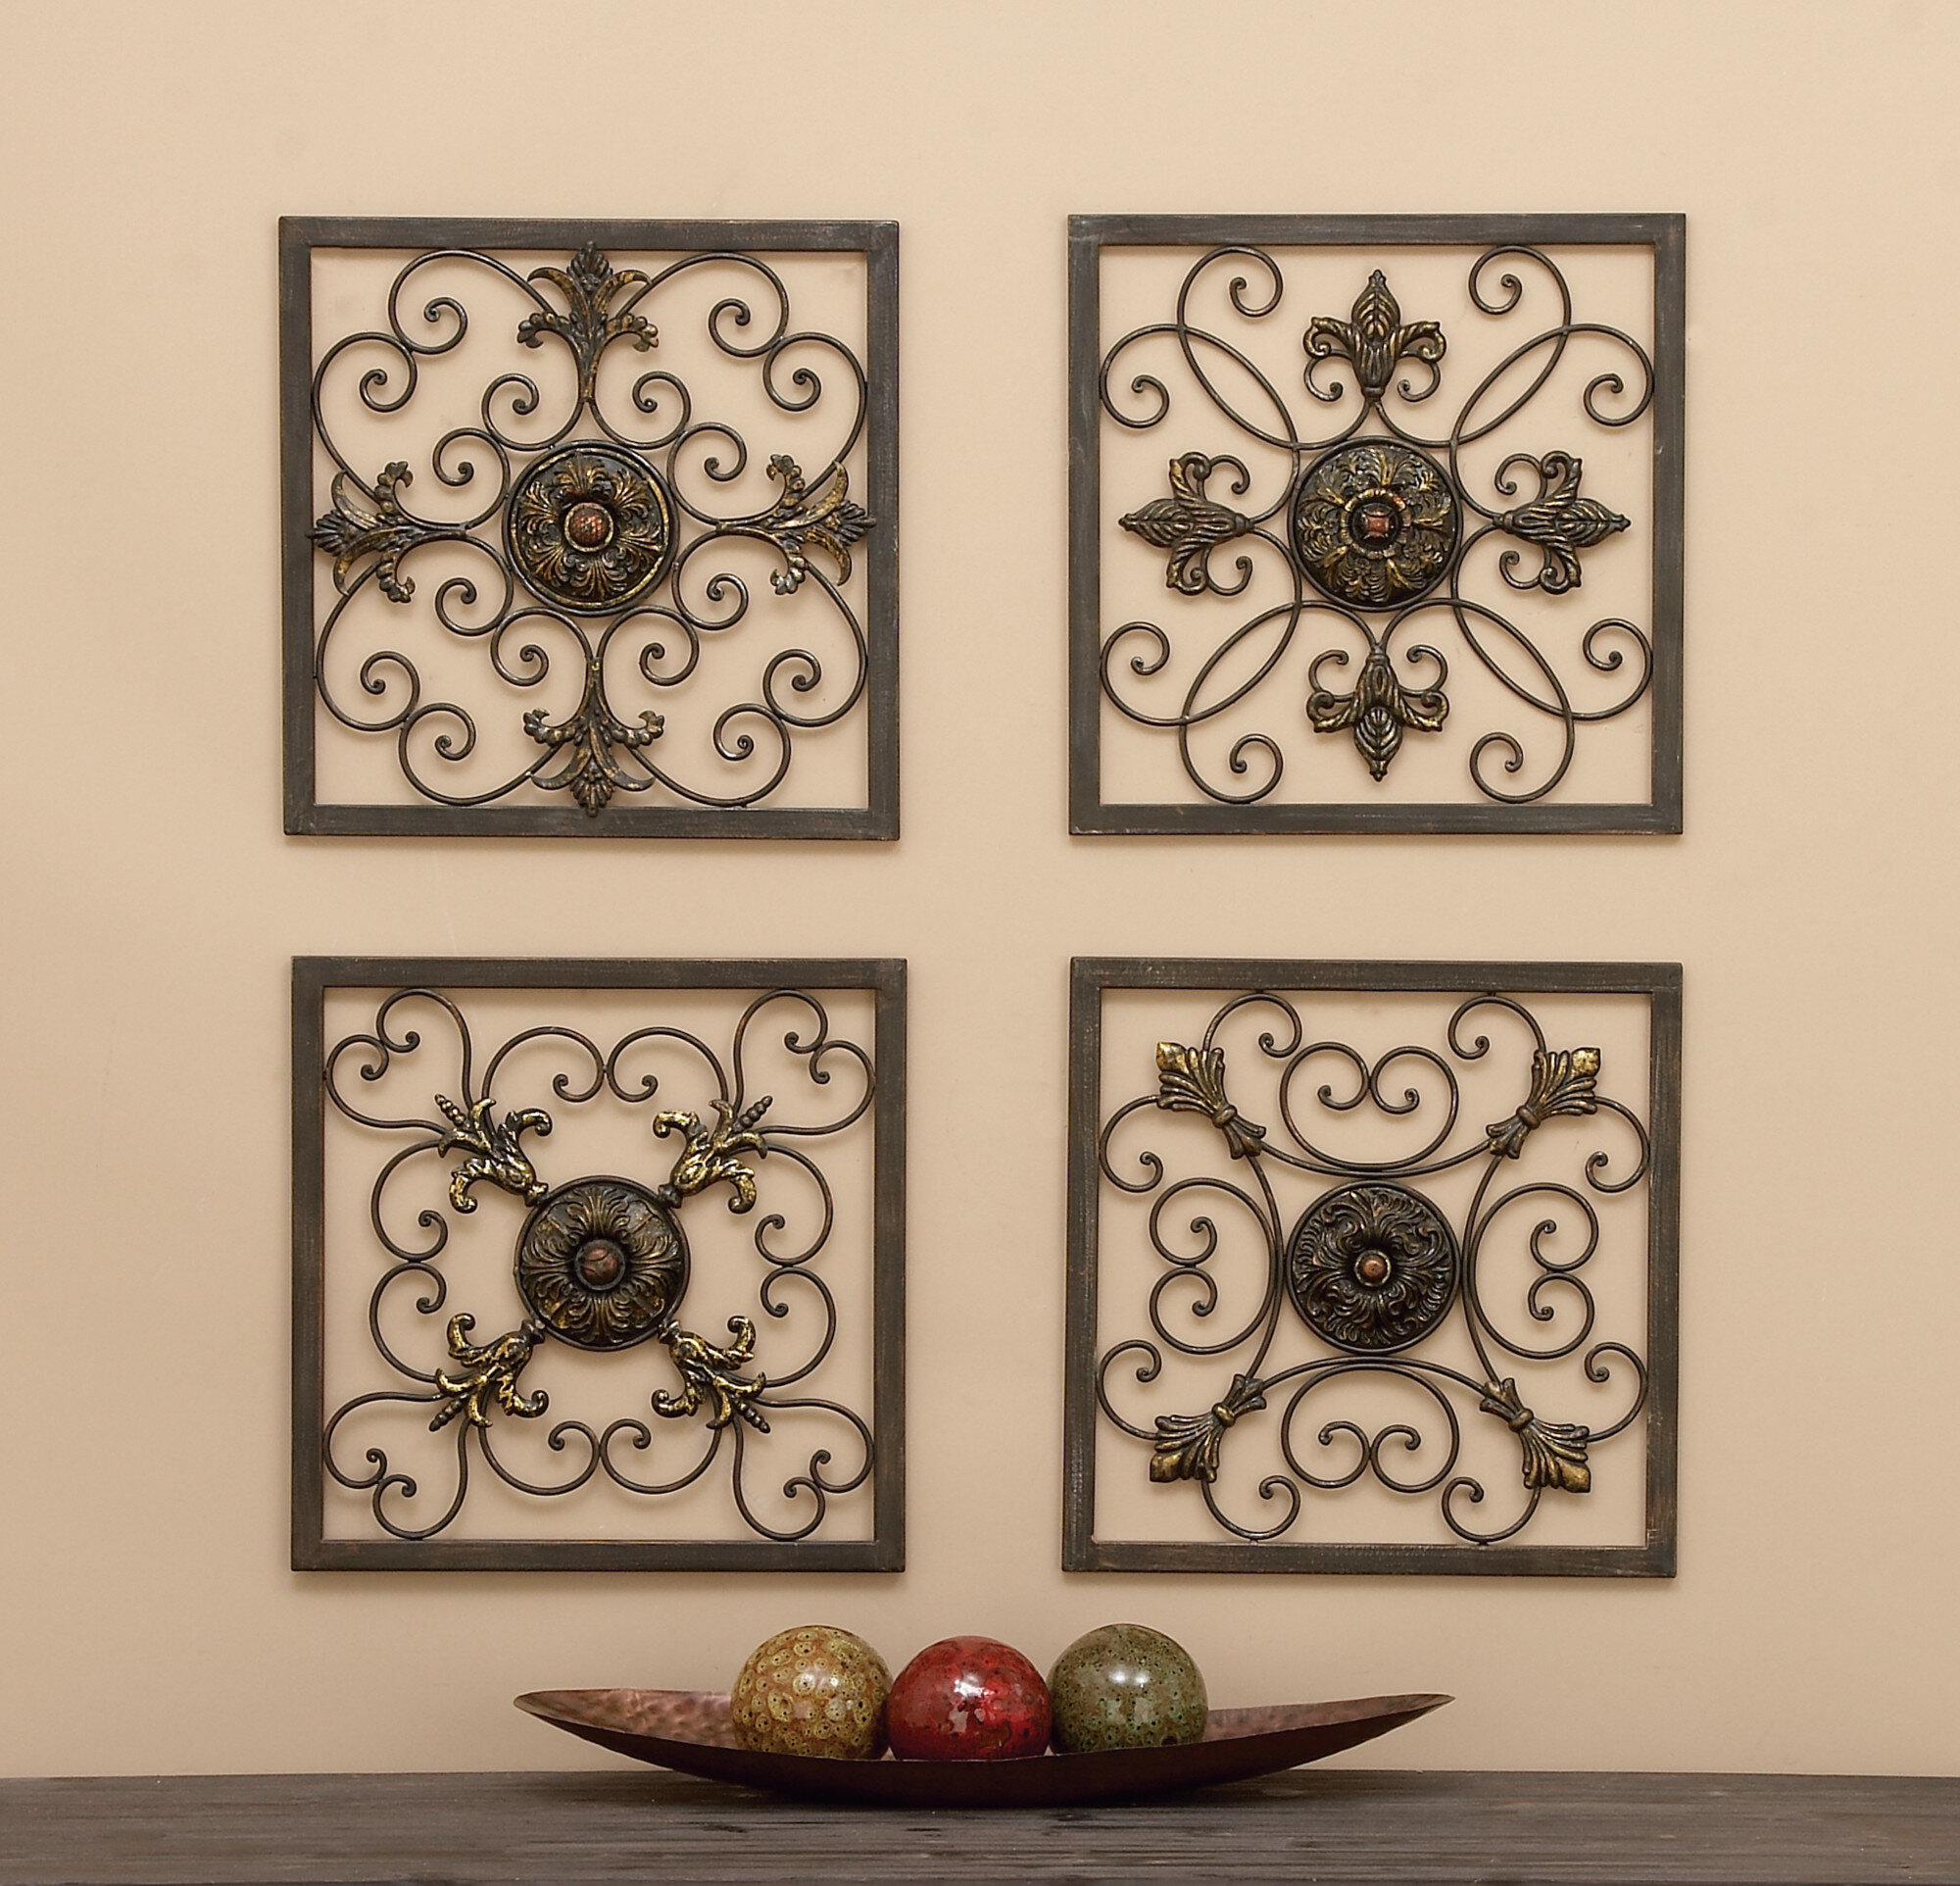 4 Piece Metal Wall Plaque Décor Set With 2 Piece Metal Wall Decor Sets By Fleur De Lis Living (View 22 of 30)